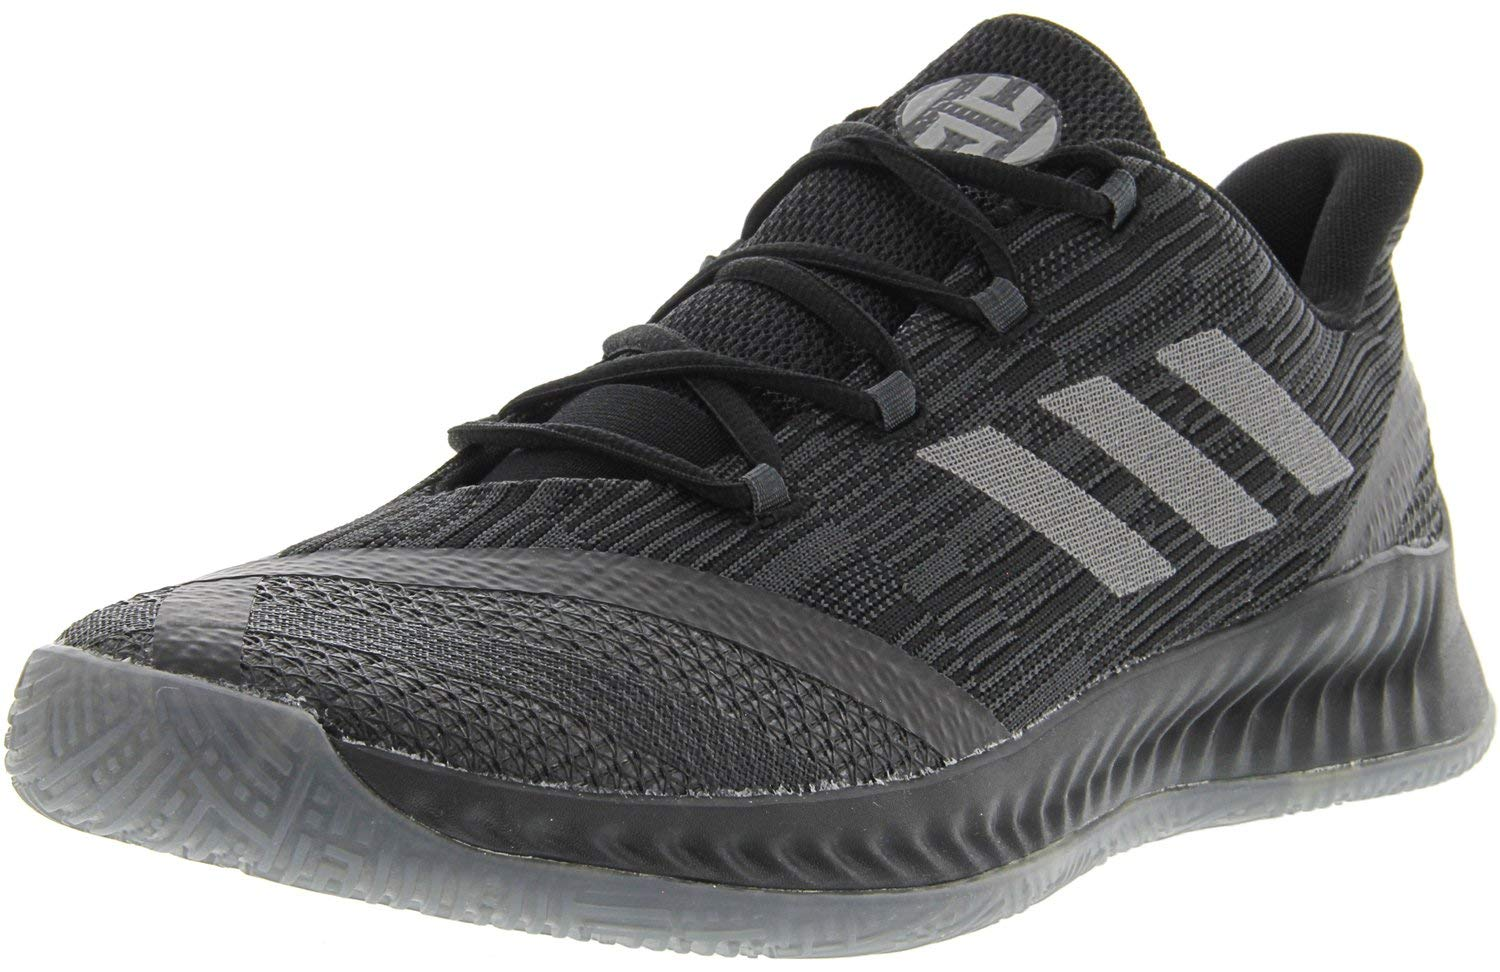 low priced 896ac cc9d8 Galleon - Adidas BE 2 Shoe - Mens Basketball 11 BlackDark Gr